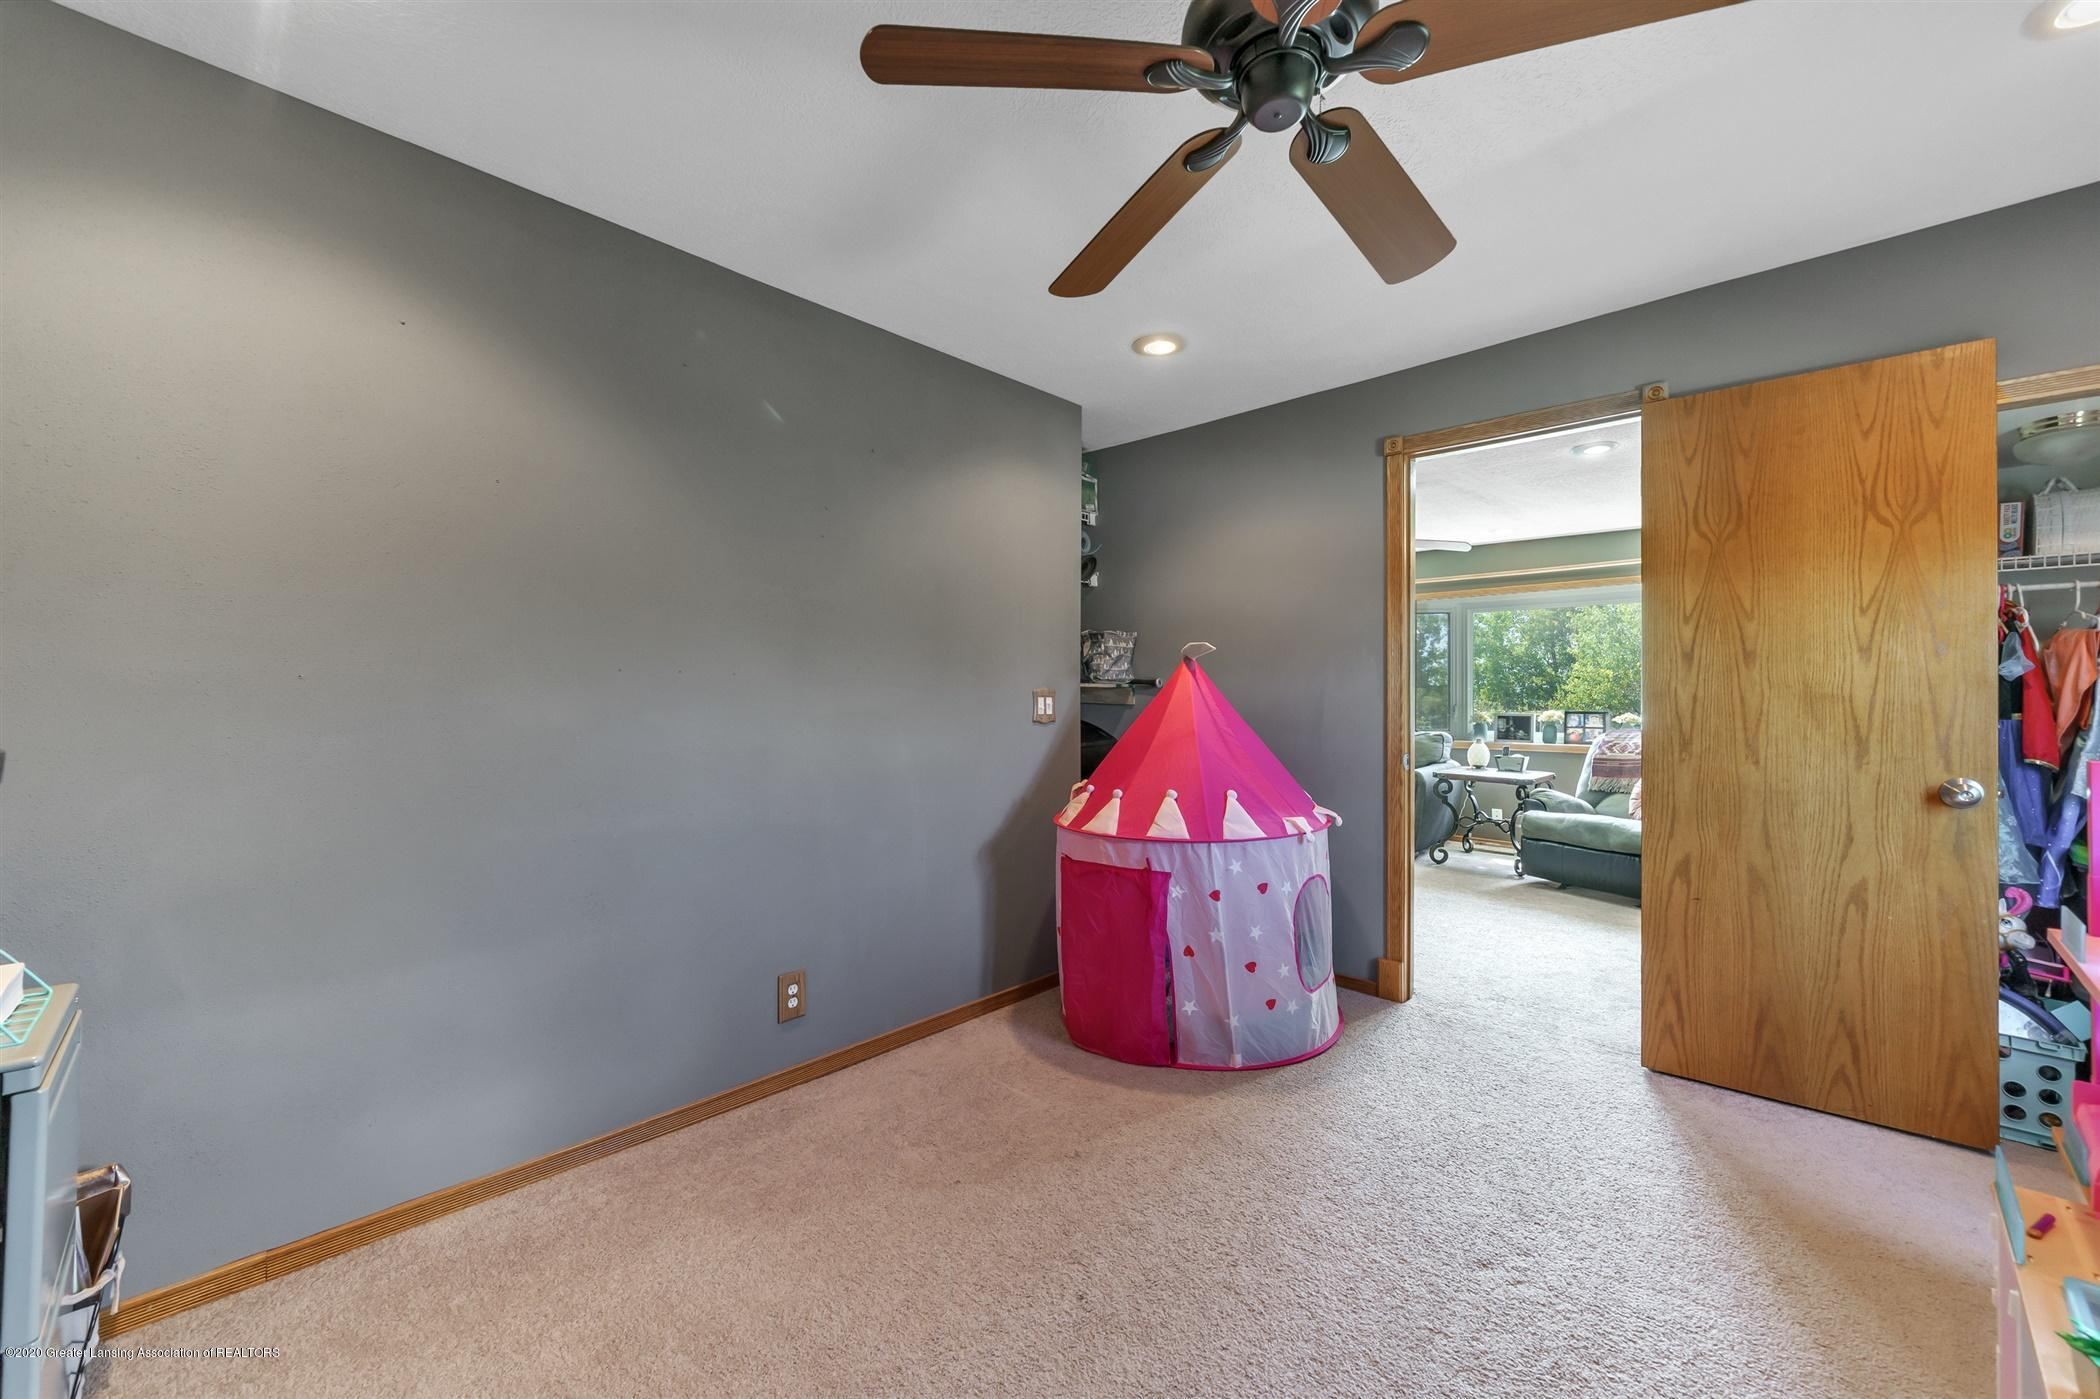 3690 N Chandler Rd - 12-3690 N Chandler-windowstill-real - 25